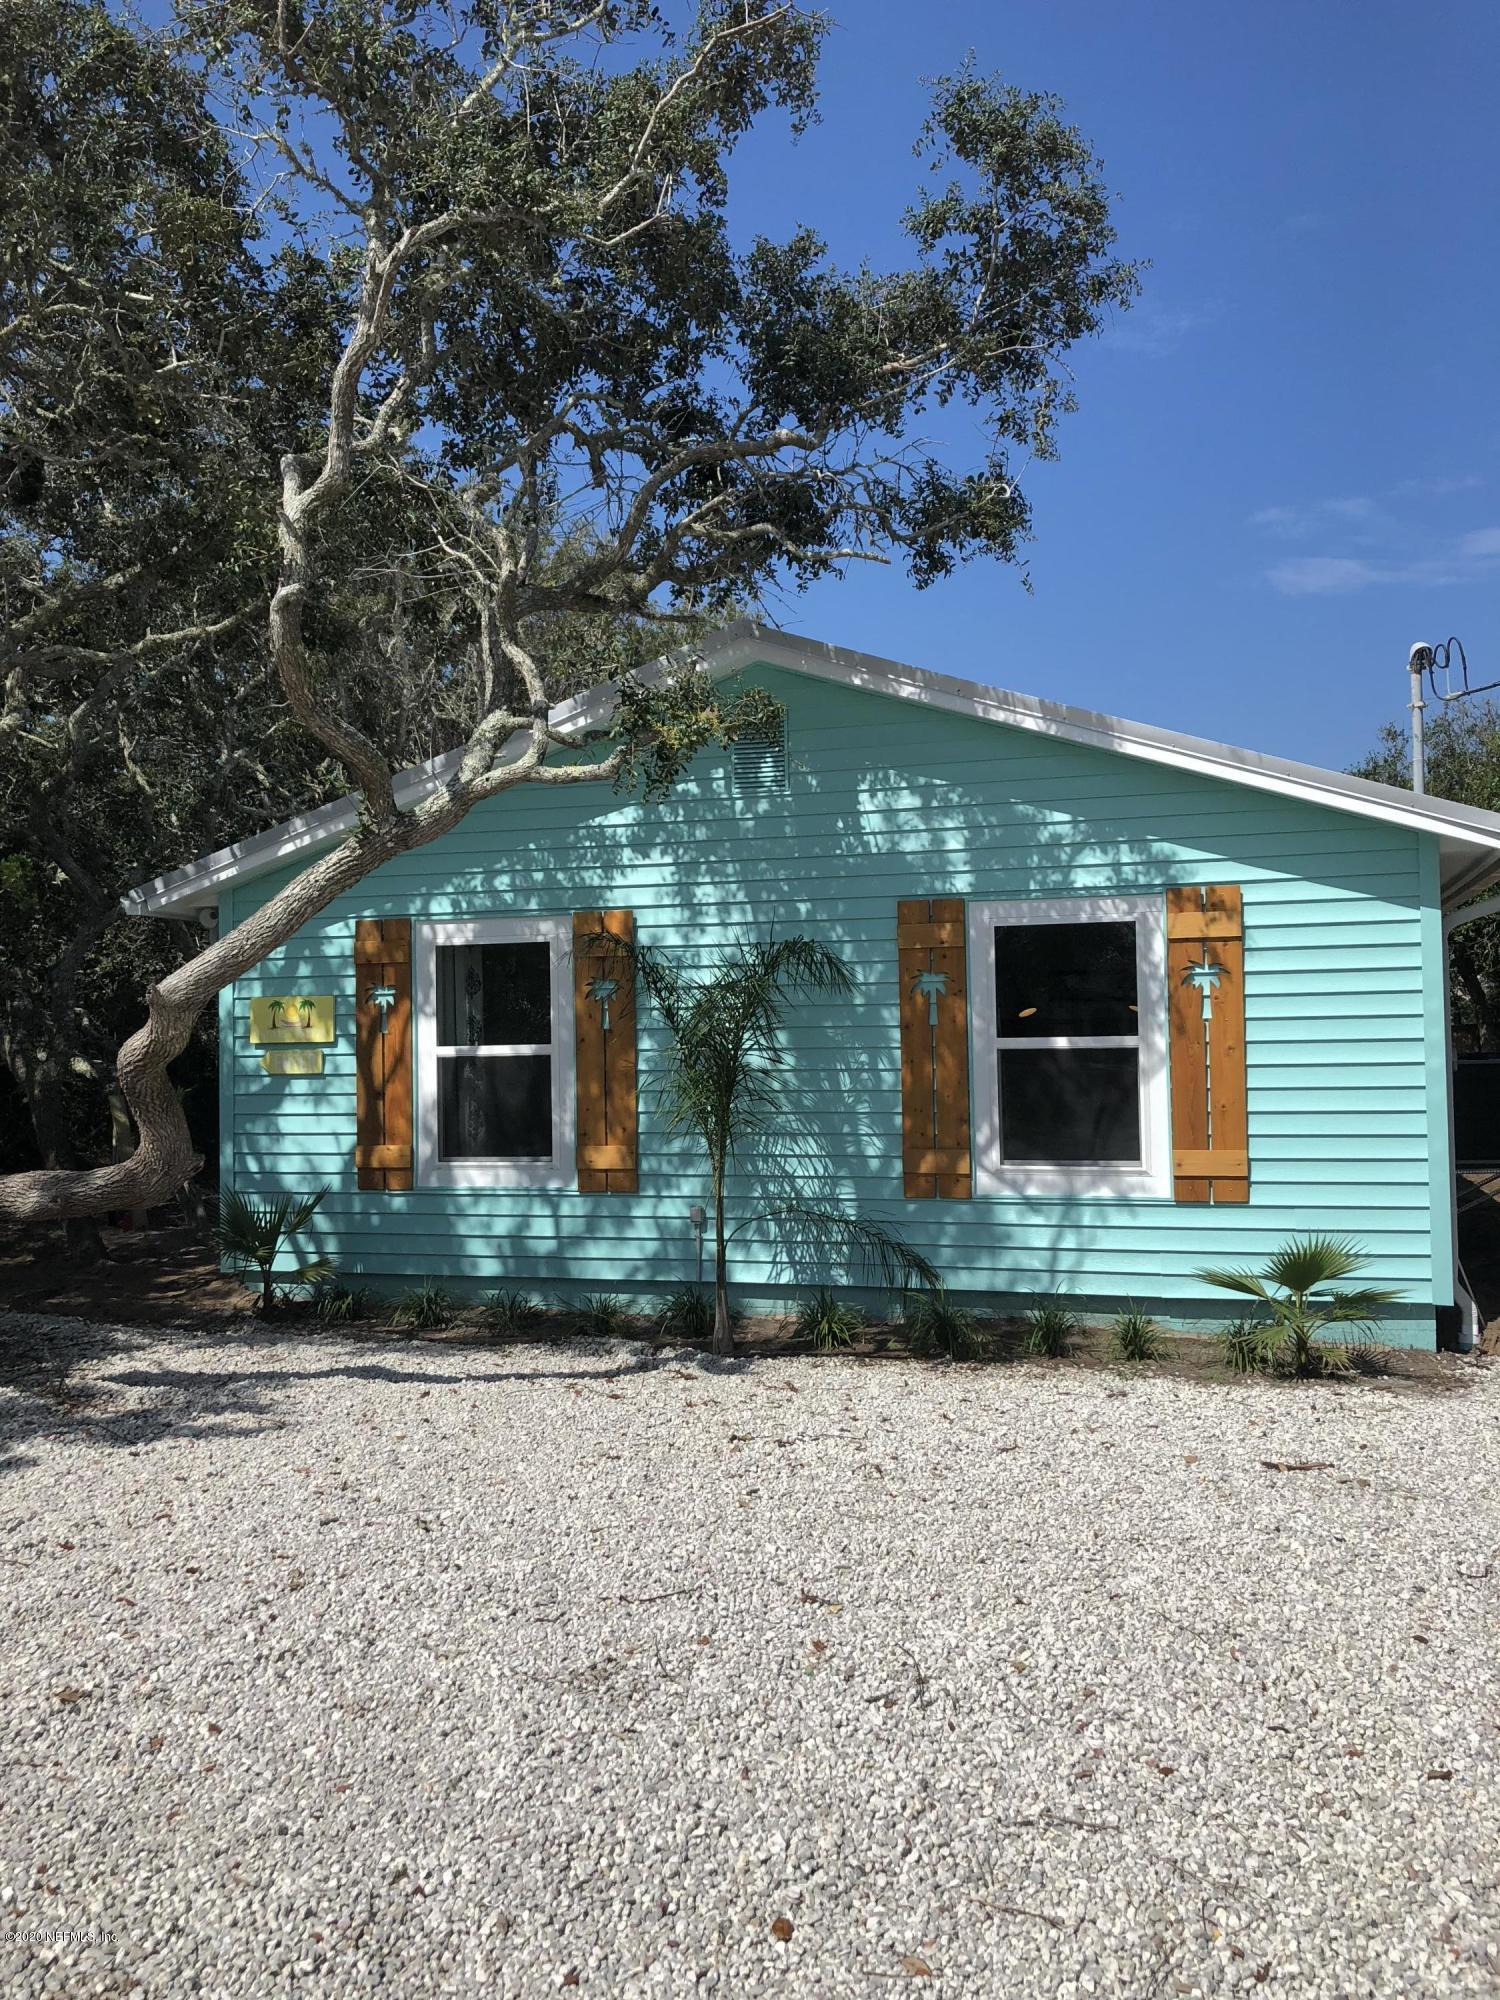 6681 MADISON, ST AUGUSTINE, FLORIDA 32080, 2 Bedrooms Bedrooms, ,2 BathroomsBathrooms,Investment / MultiFamily,For sale,MADISON,1080606